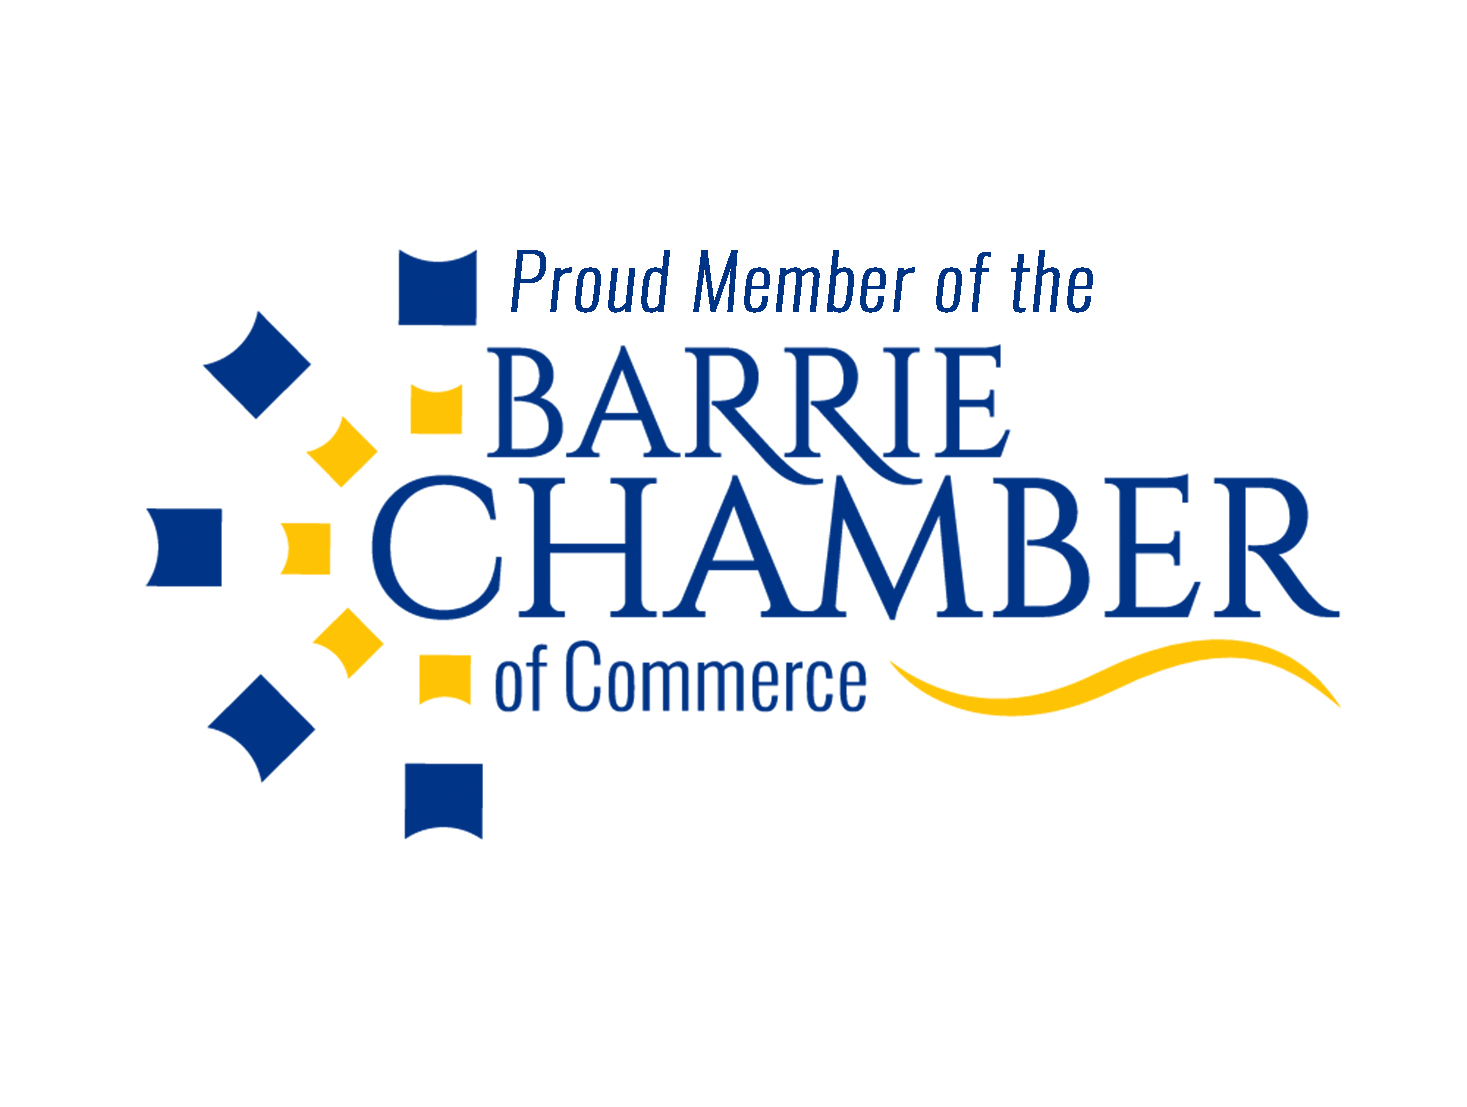 Proud Member of the Barrie Chamber of Commerce